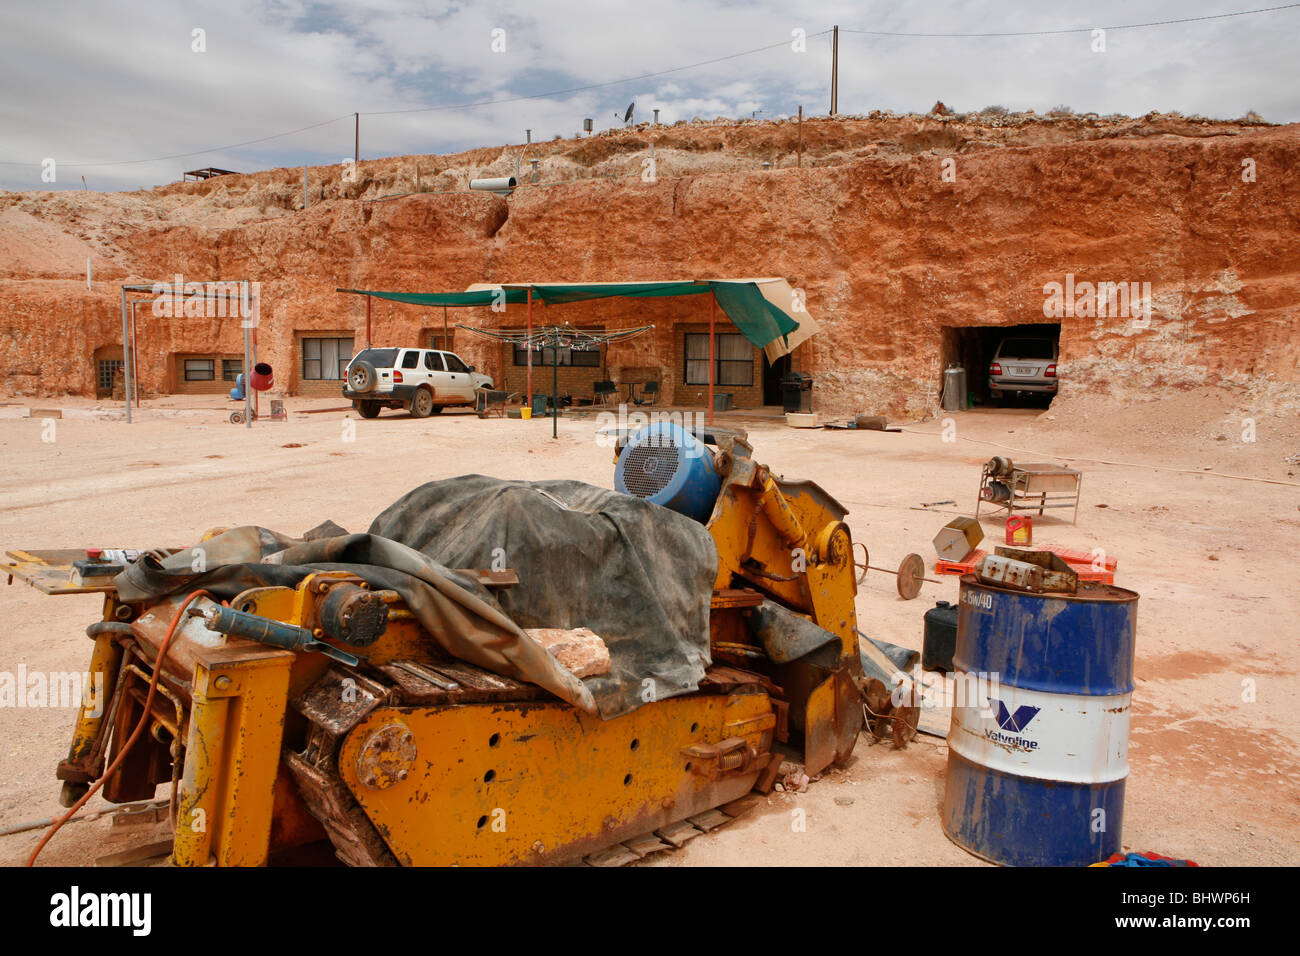 In Cooper Peddy (in the Outback) 60 percent of the people live underground, often in old mines (Outback, South Australia) - Stock Image